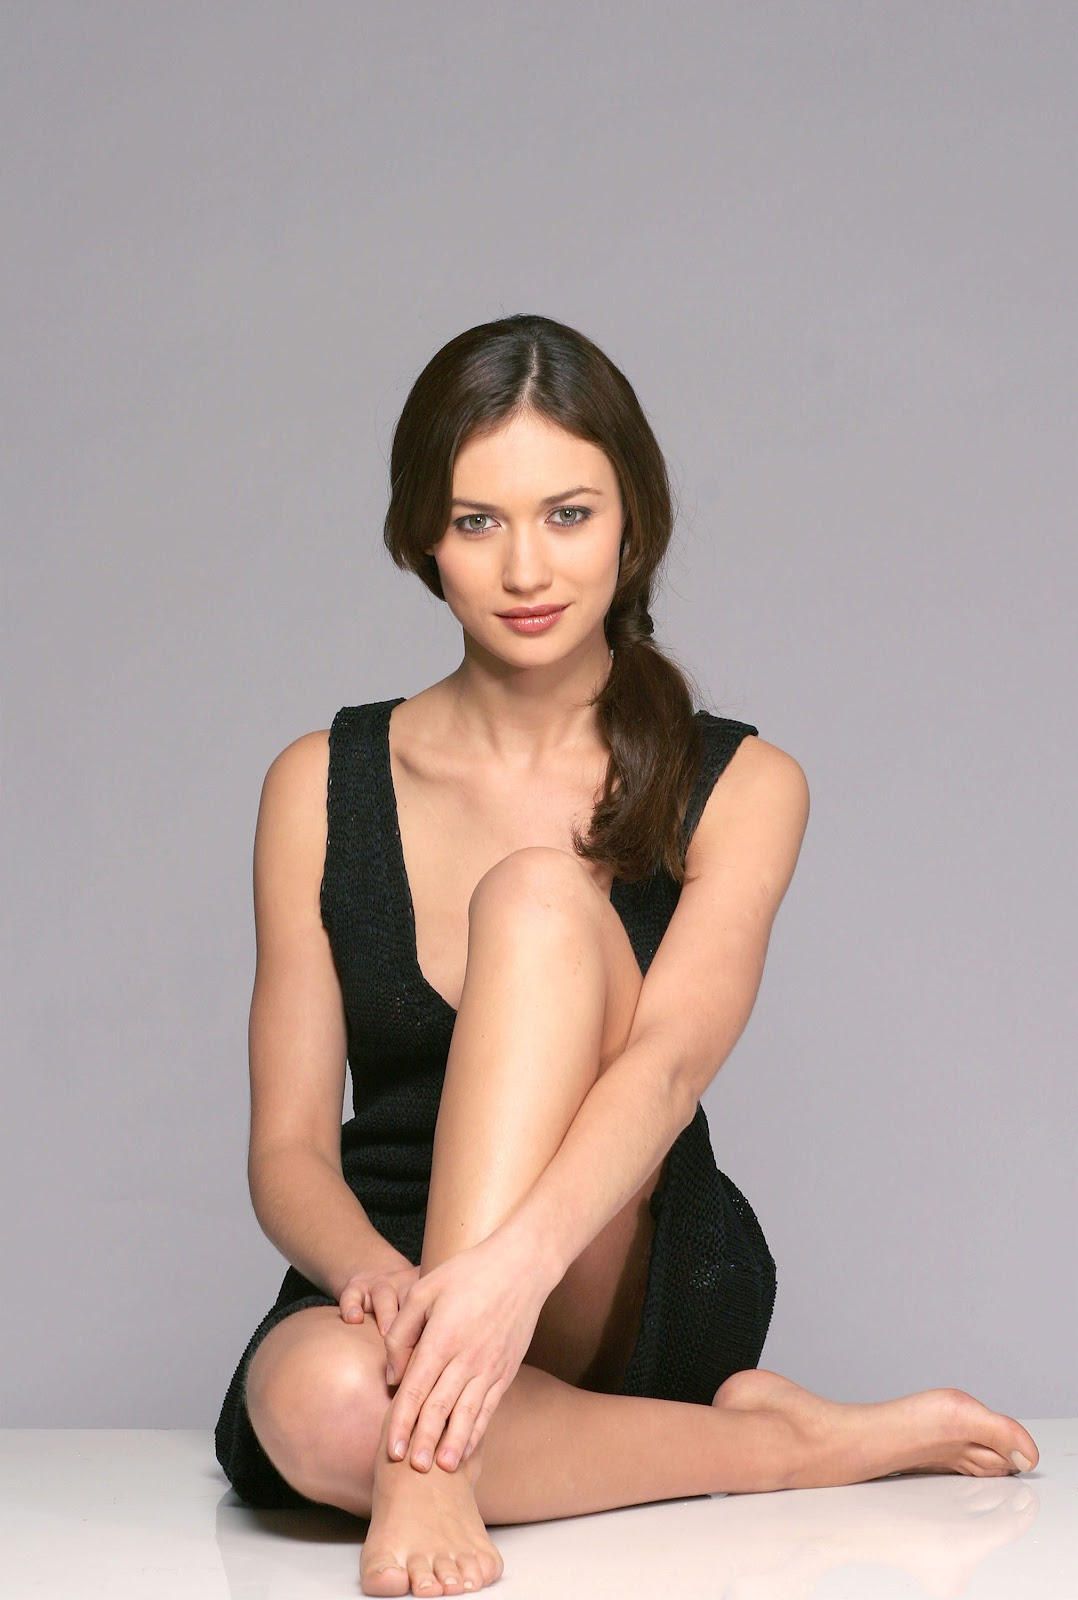 Olga Kurylenko | Celebrity Pictures: hotcelebrityfeet.wordpress.com/category/olga-kurylenko